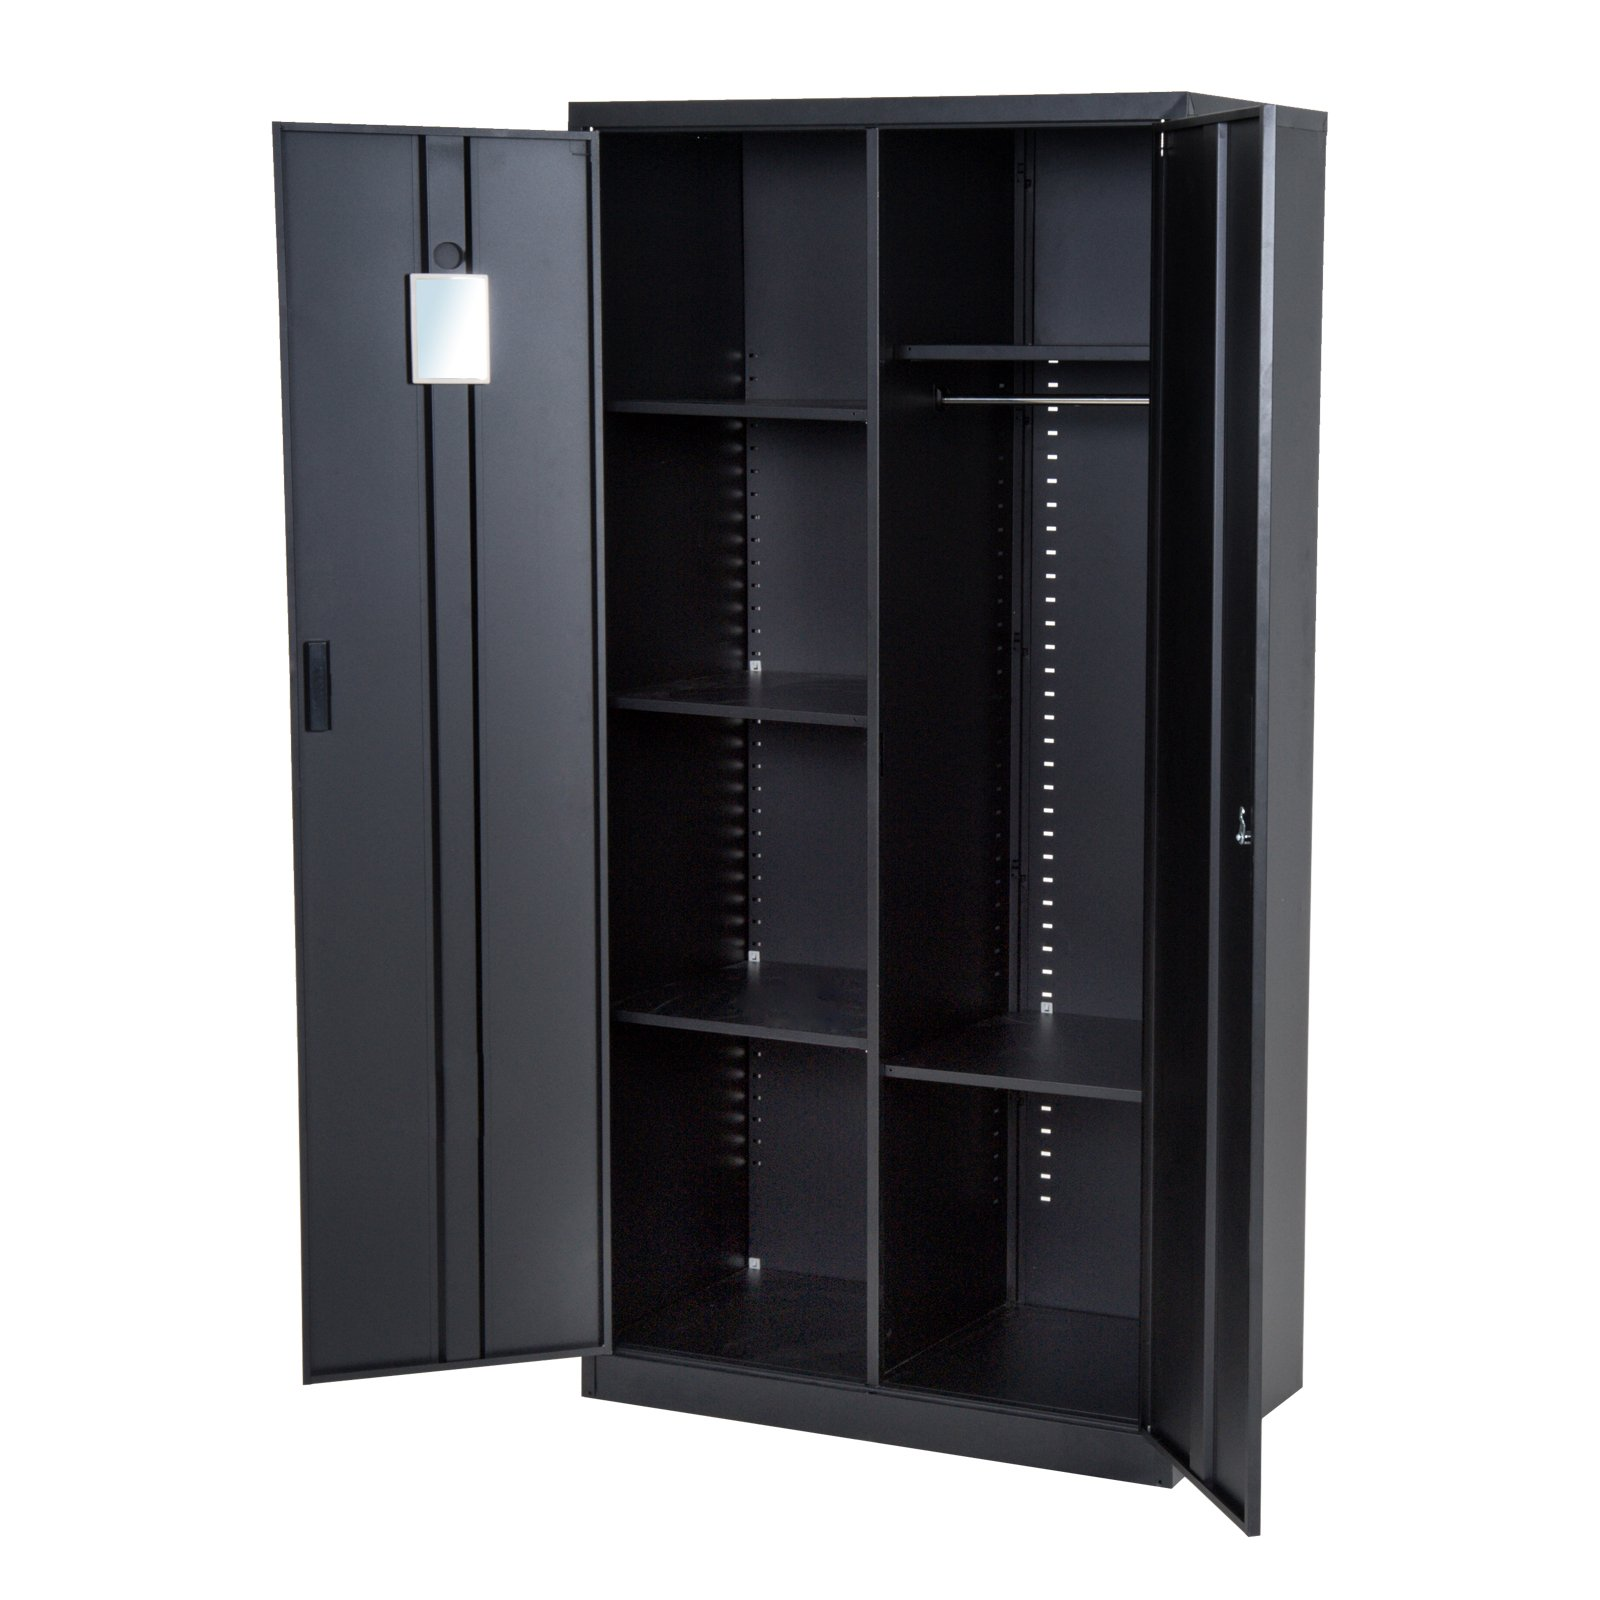 HOMCOM 71'' Cold Rolled Steel Lockable Garage Storage Cabinet with Shelves - Black by HOMCOM